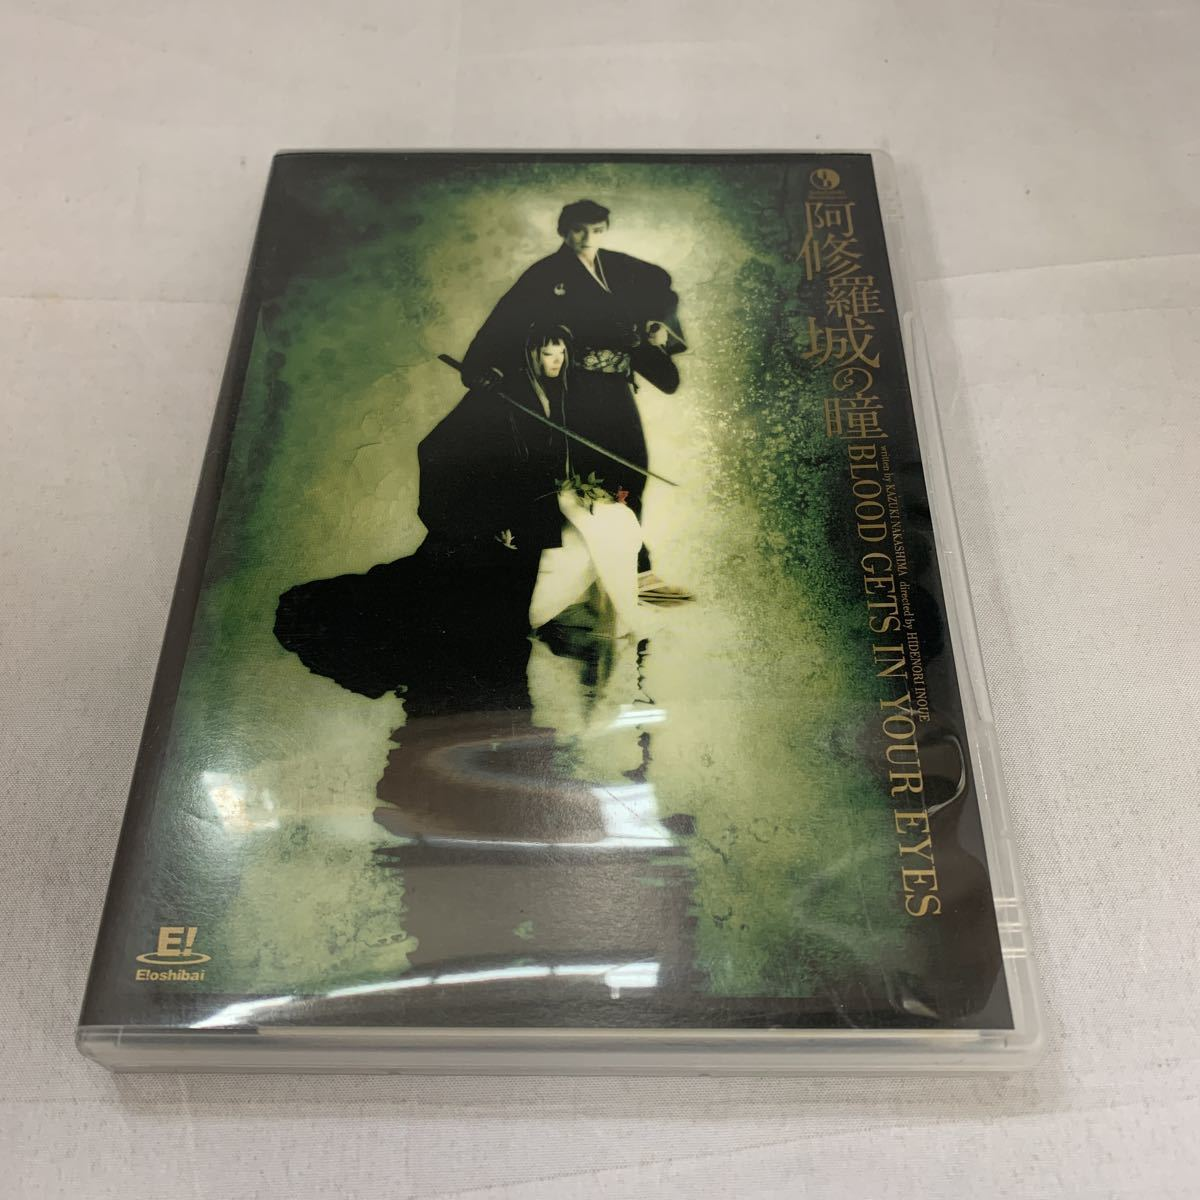 【DVD】阿修羅城の瞳 2000 BLOOD GETS IN YOUR EYES市川染五郎 0714ts1